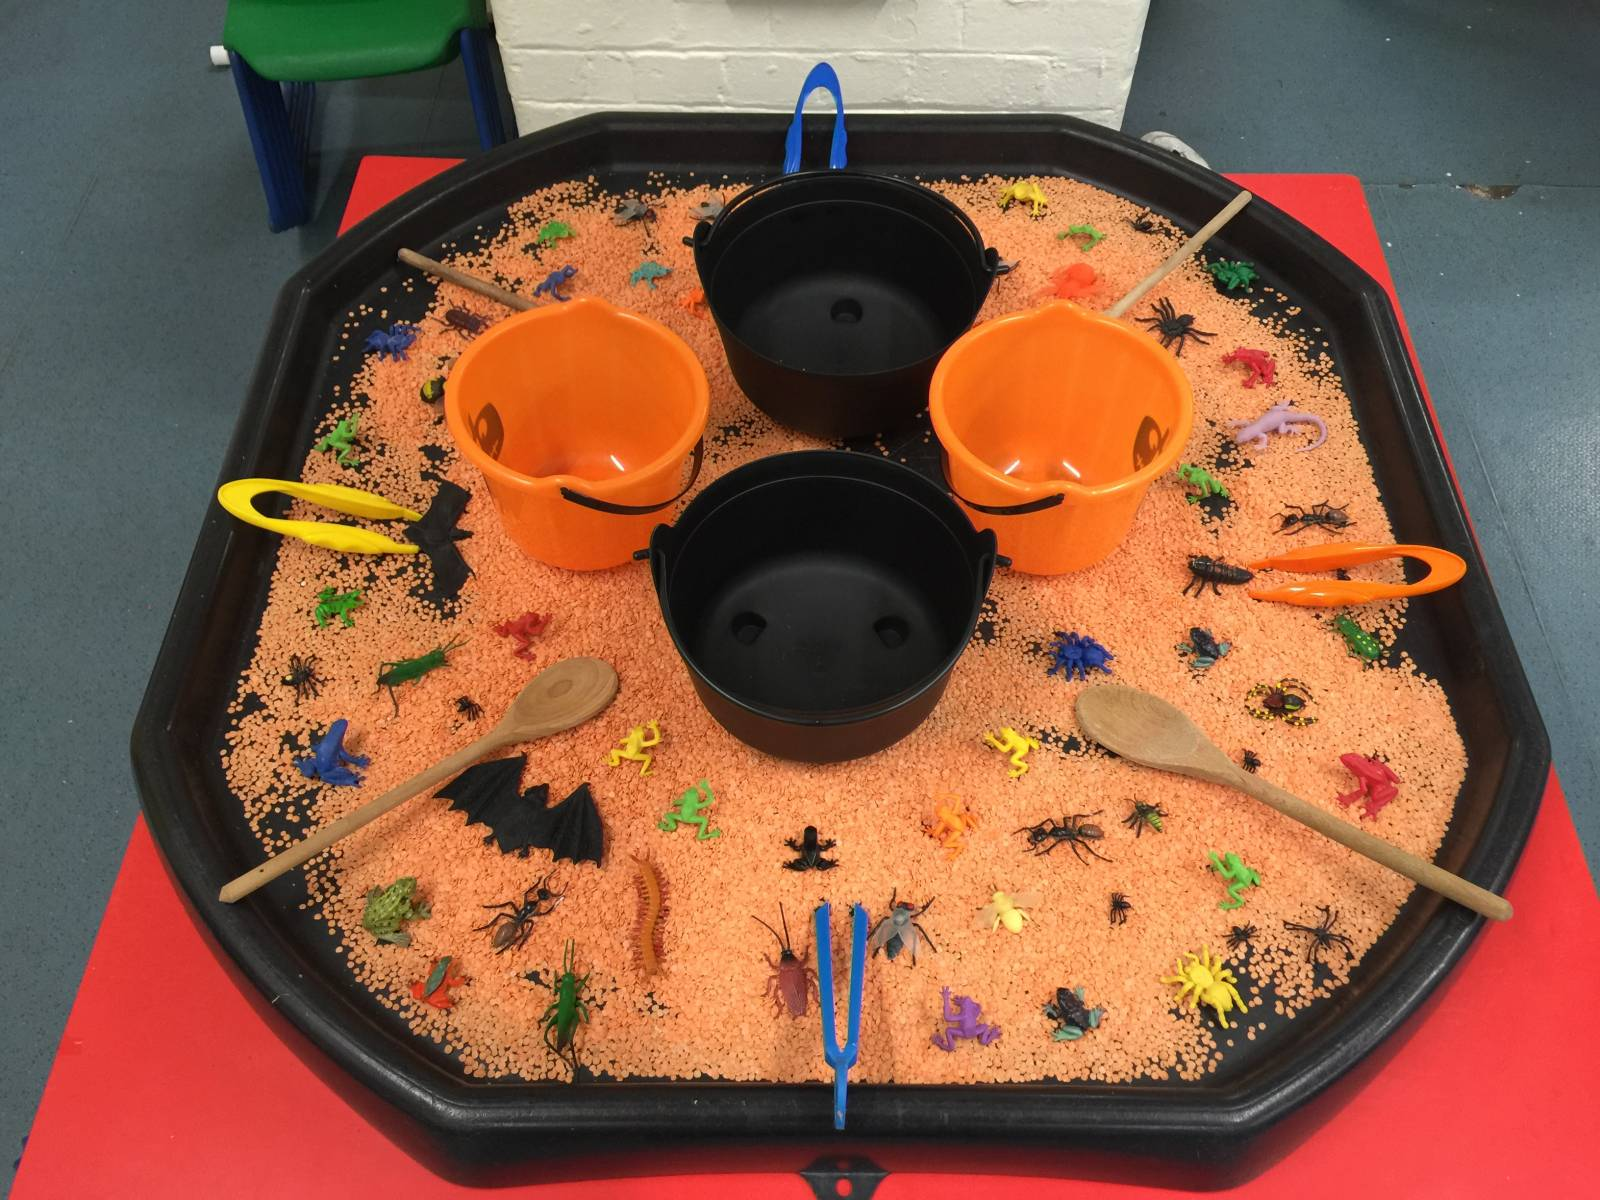 Spooky goings on in Reception - Primrose Hill Primary School